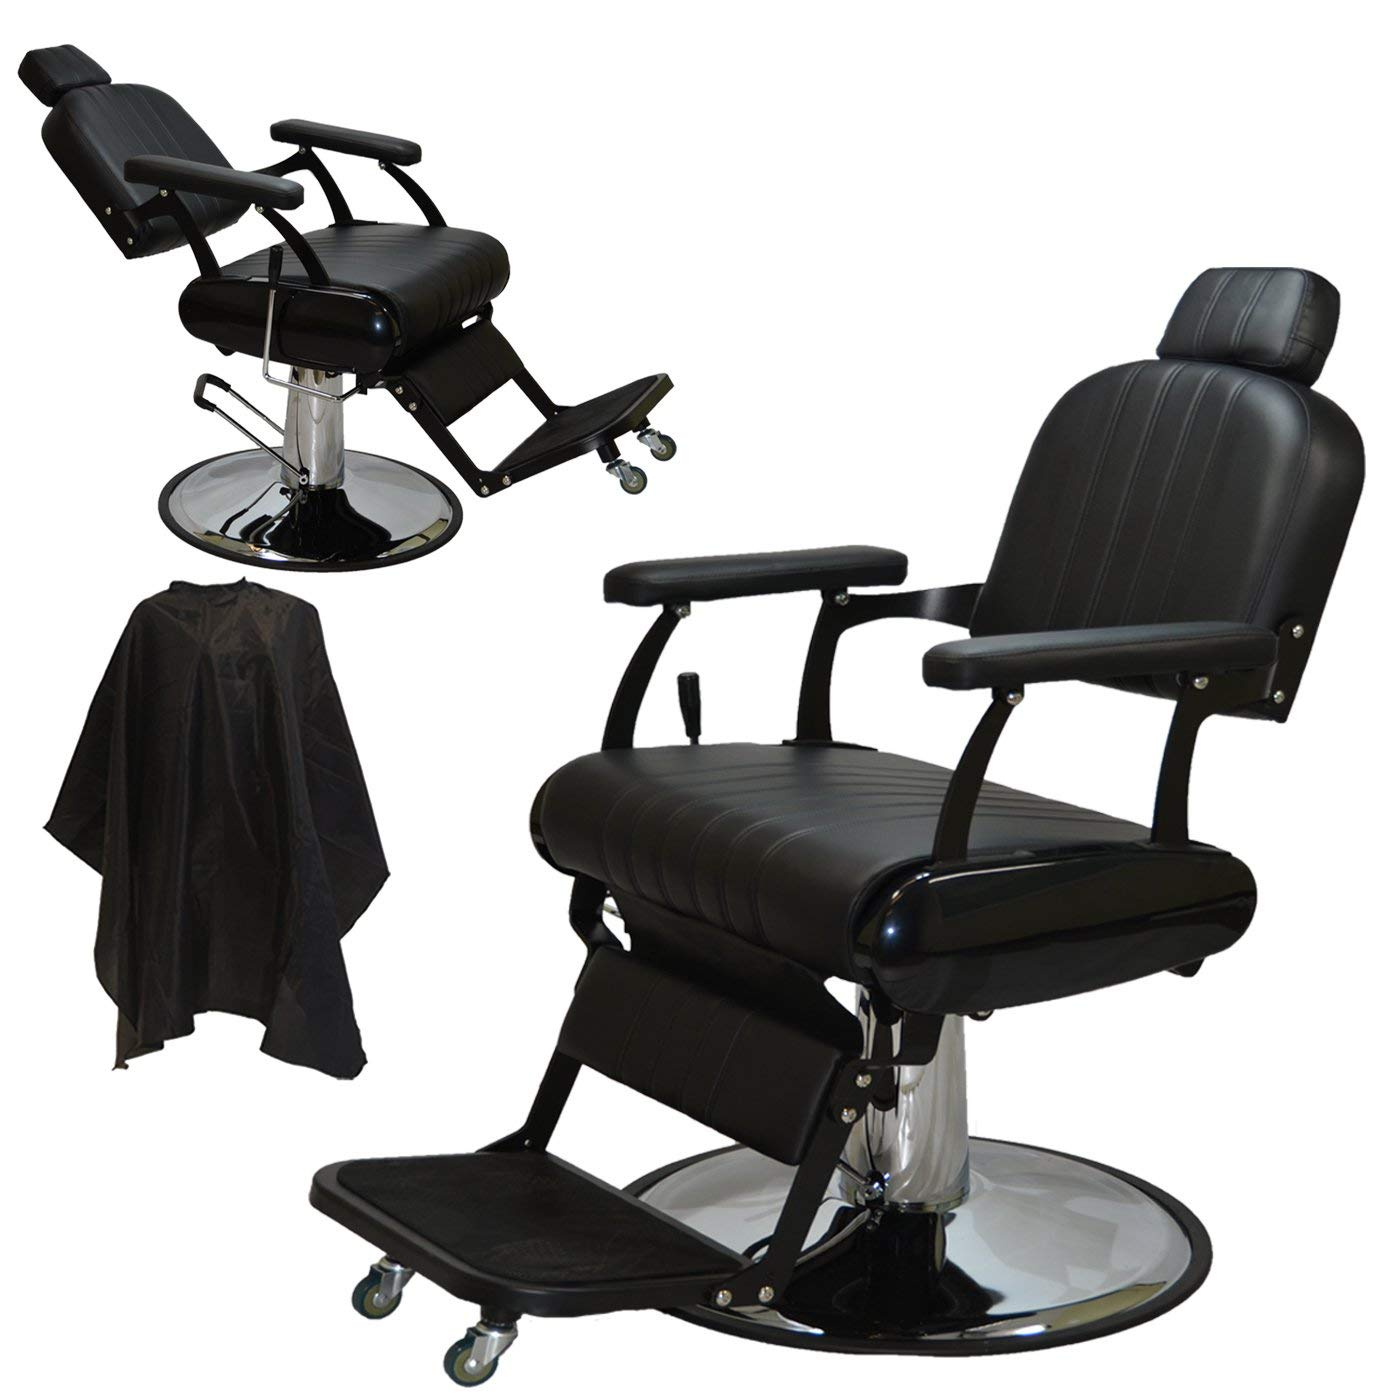 LCL Beauty Extra-Large Classic Hydraulic Barber Chair